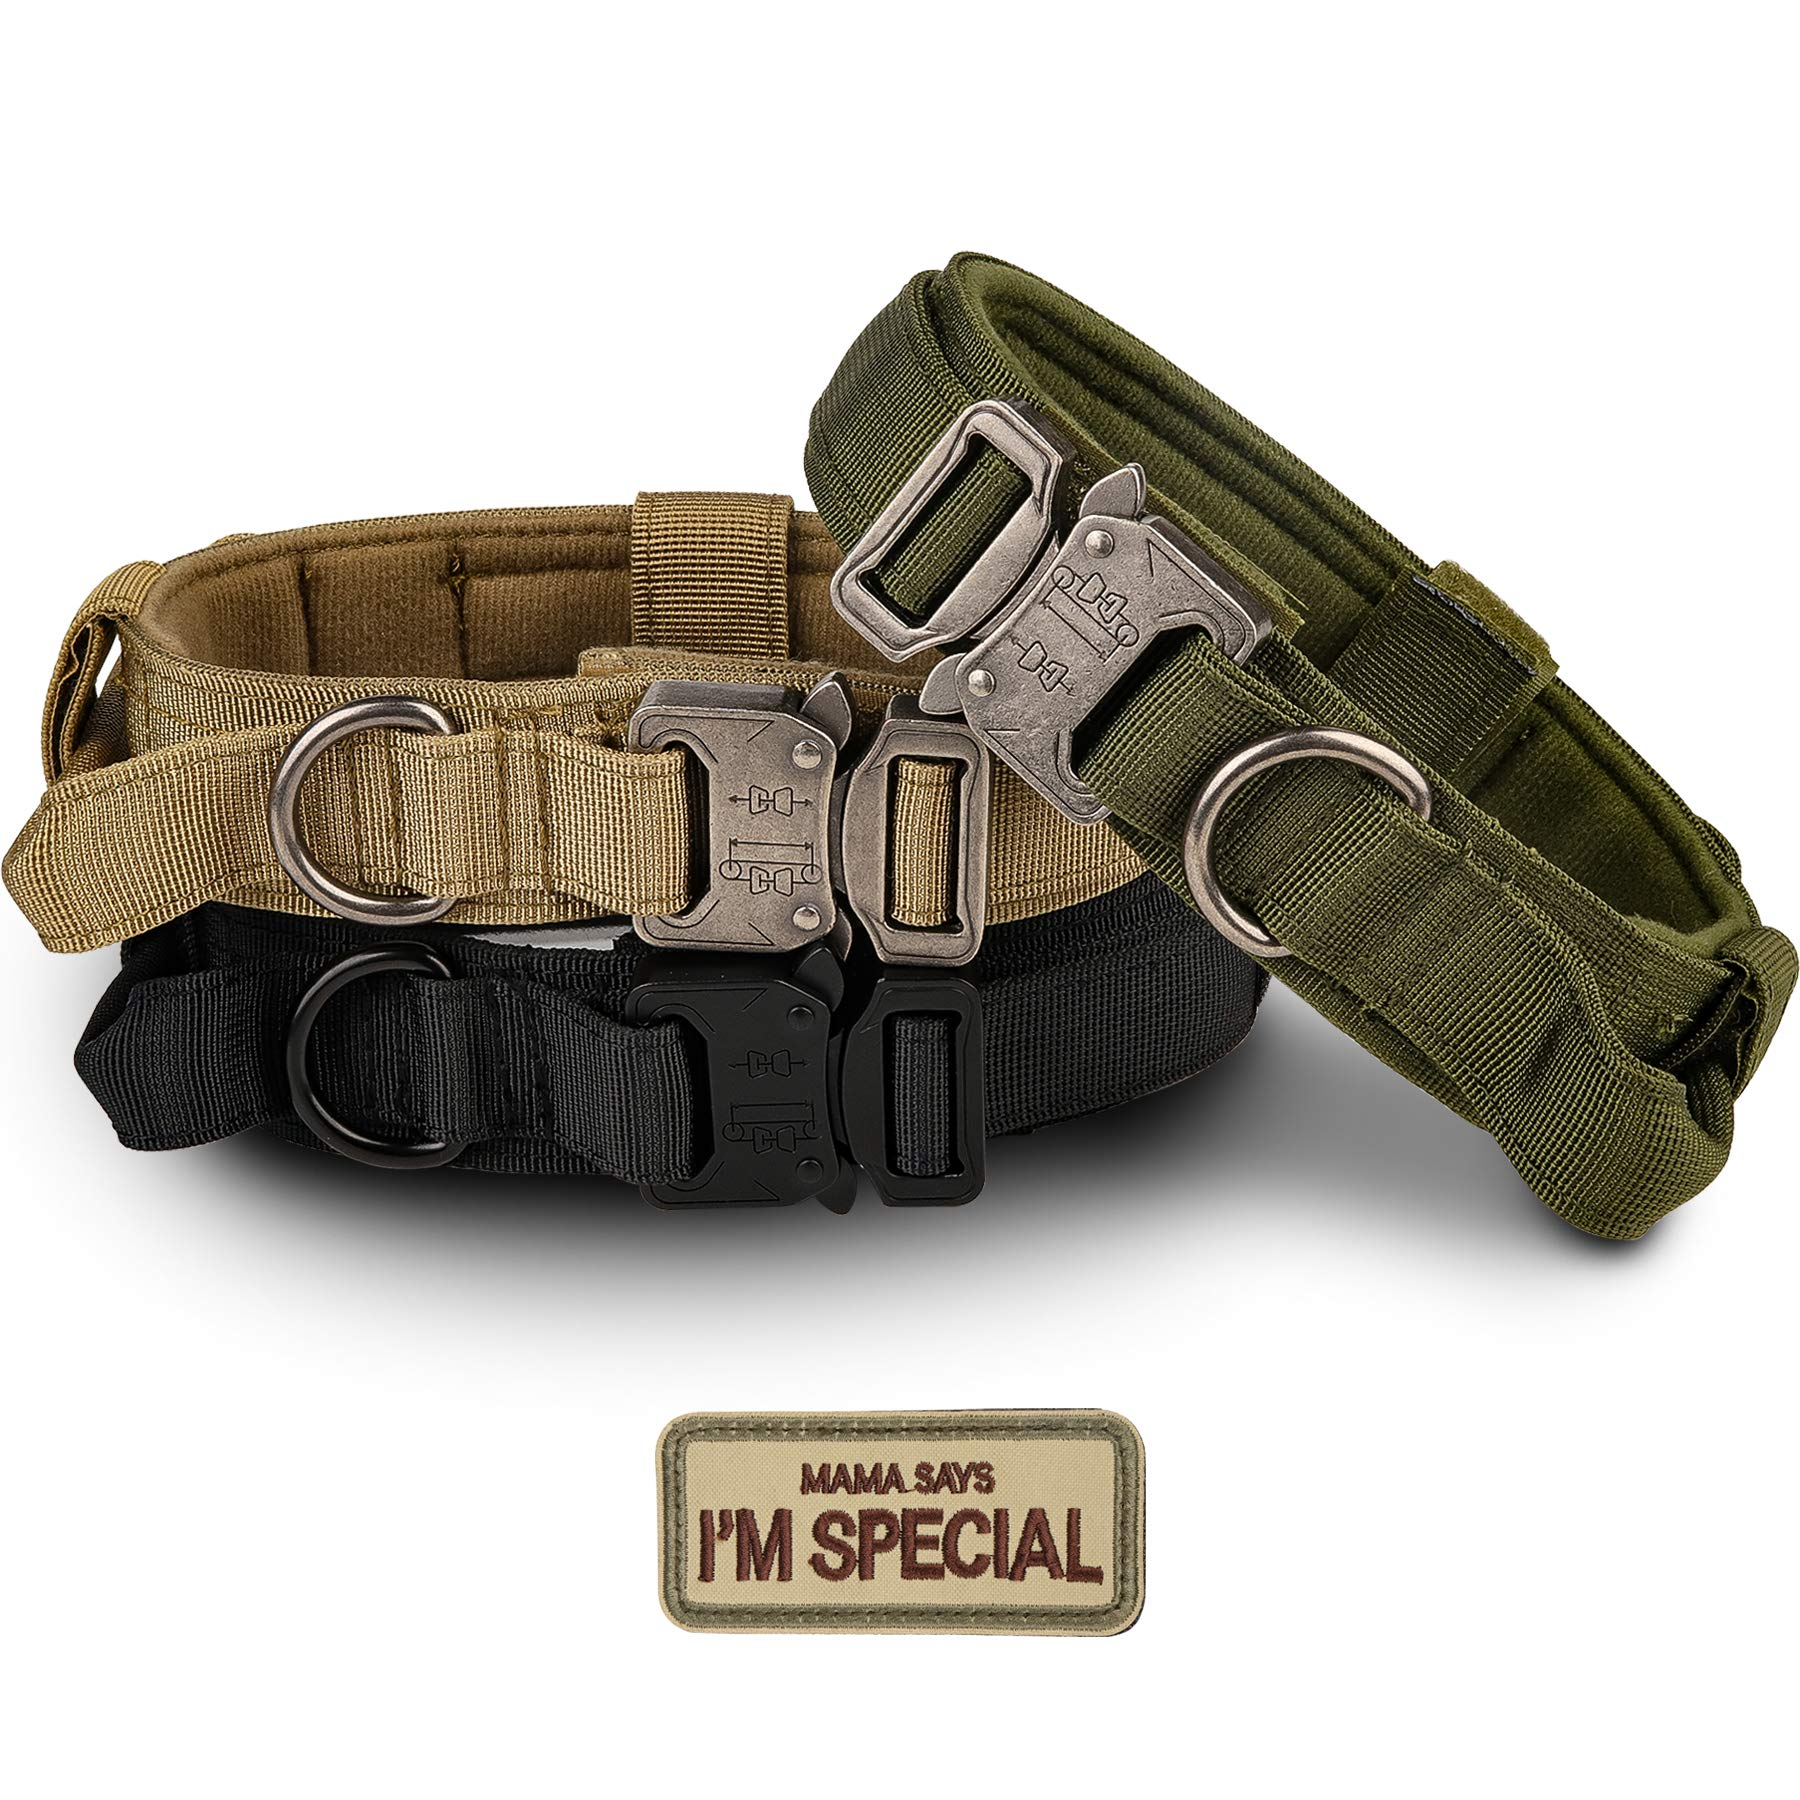 Tactical Dog Collar - KCUCOP Military Dog Collar with Mama Says I m Special Patch Thick with Handle K9 Collar Tactipup Dog Collars Adjustable Heavy Duty Metal Buckle for M,L,XL Dogs(Green,M)